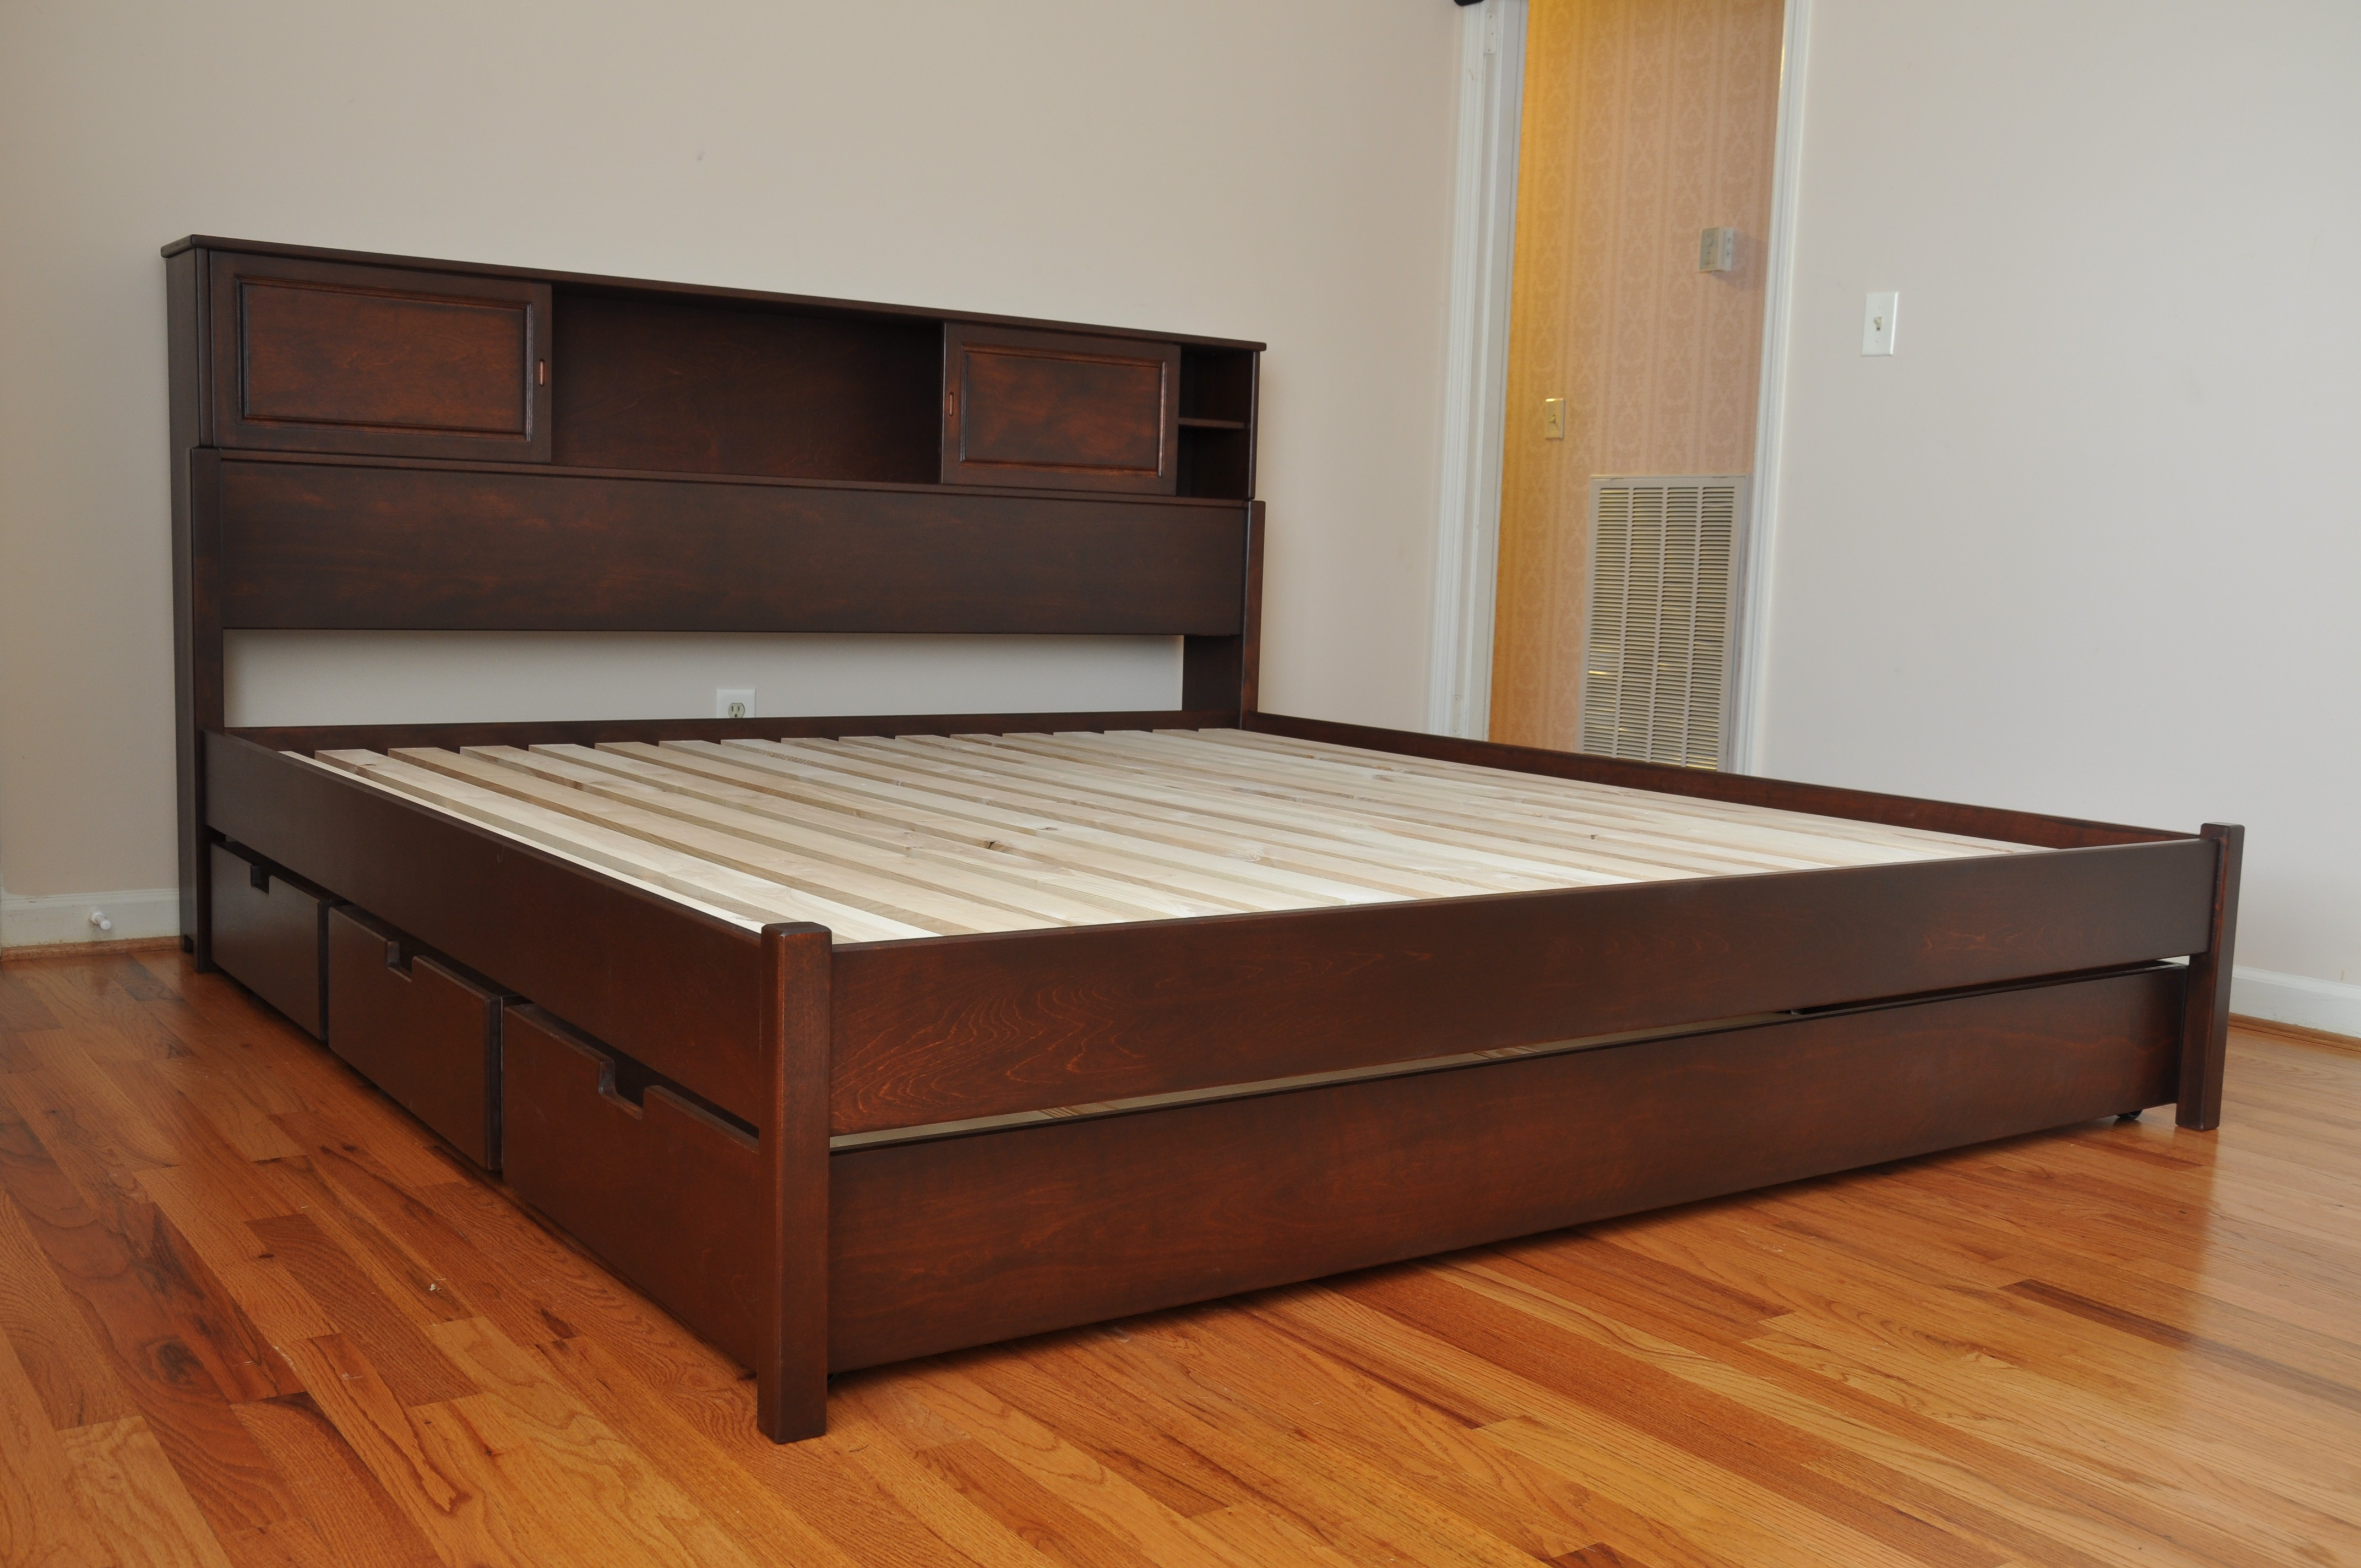 bedroom wood low profile storage drawers plus bookcase headboard queenplatform bed frame. low profile bed frame queen  homesfeed